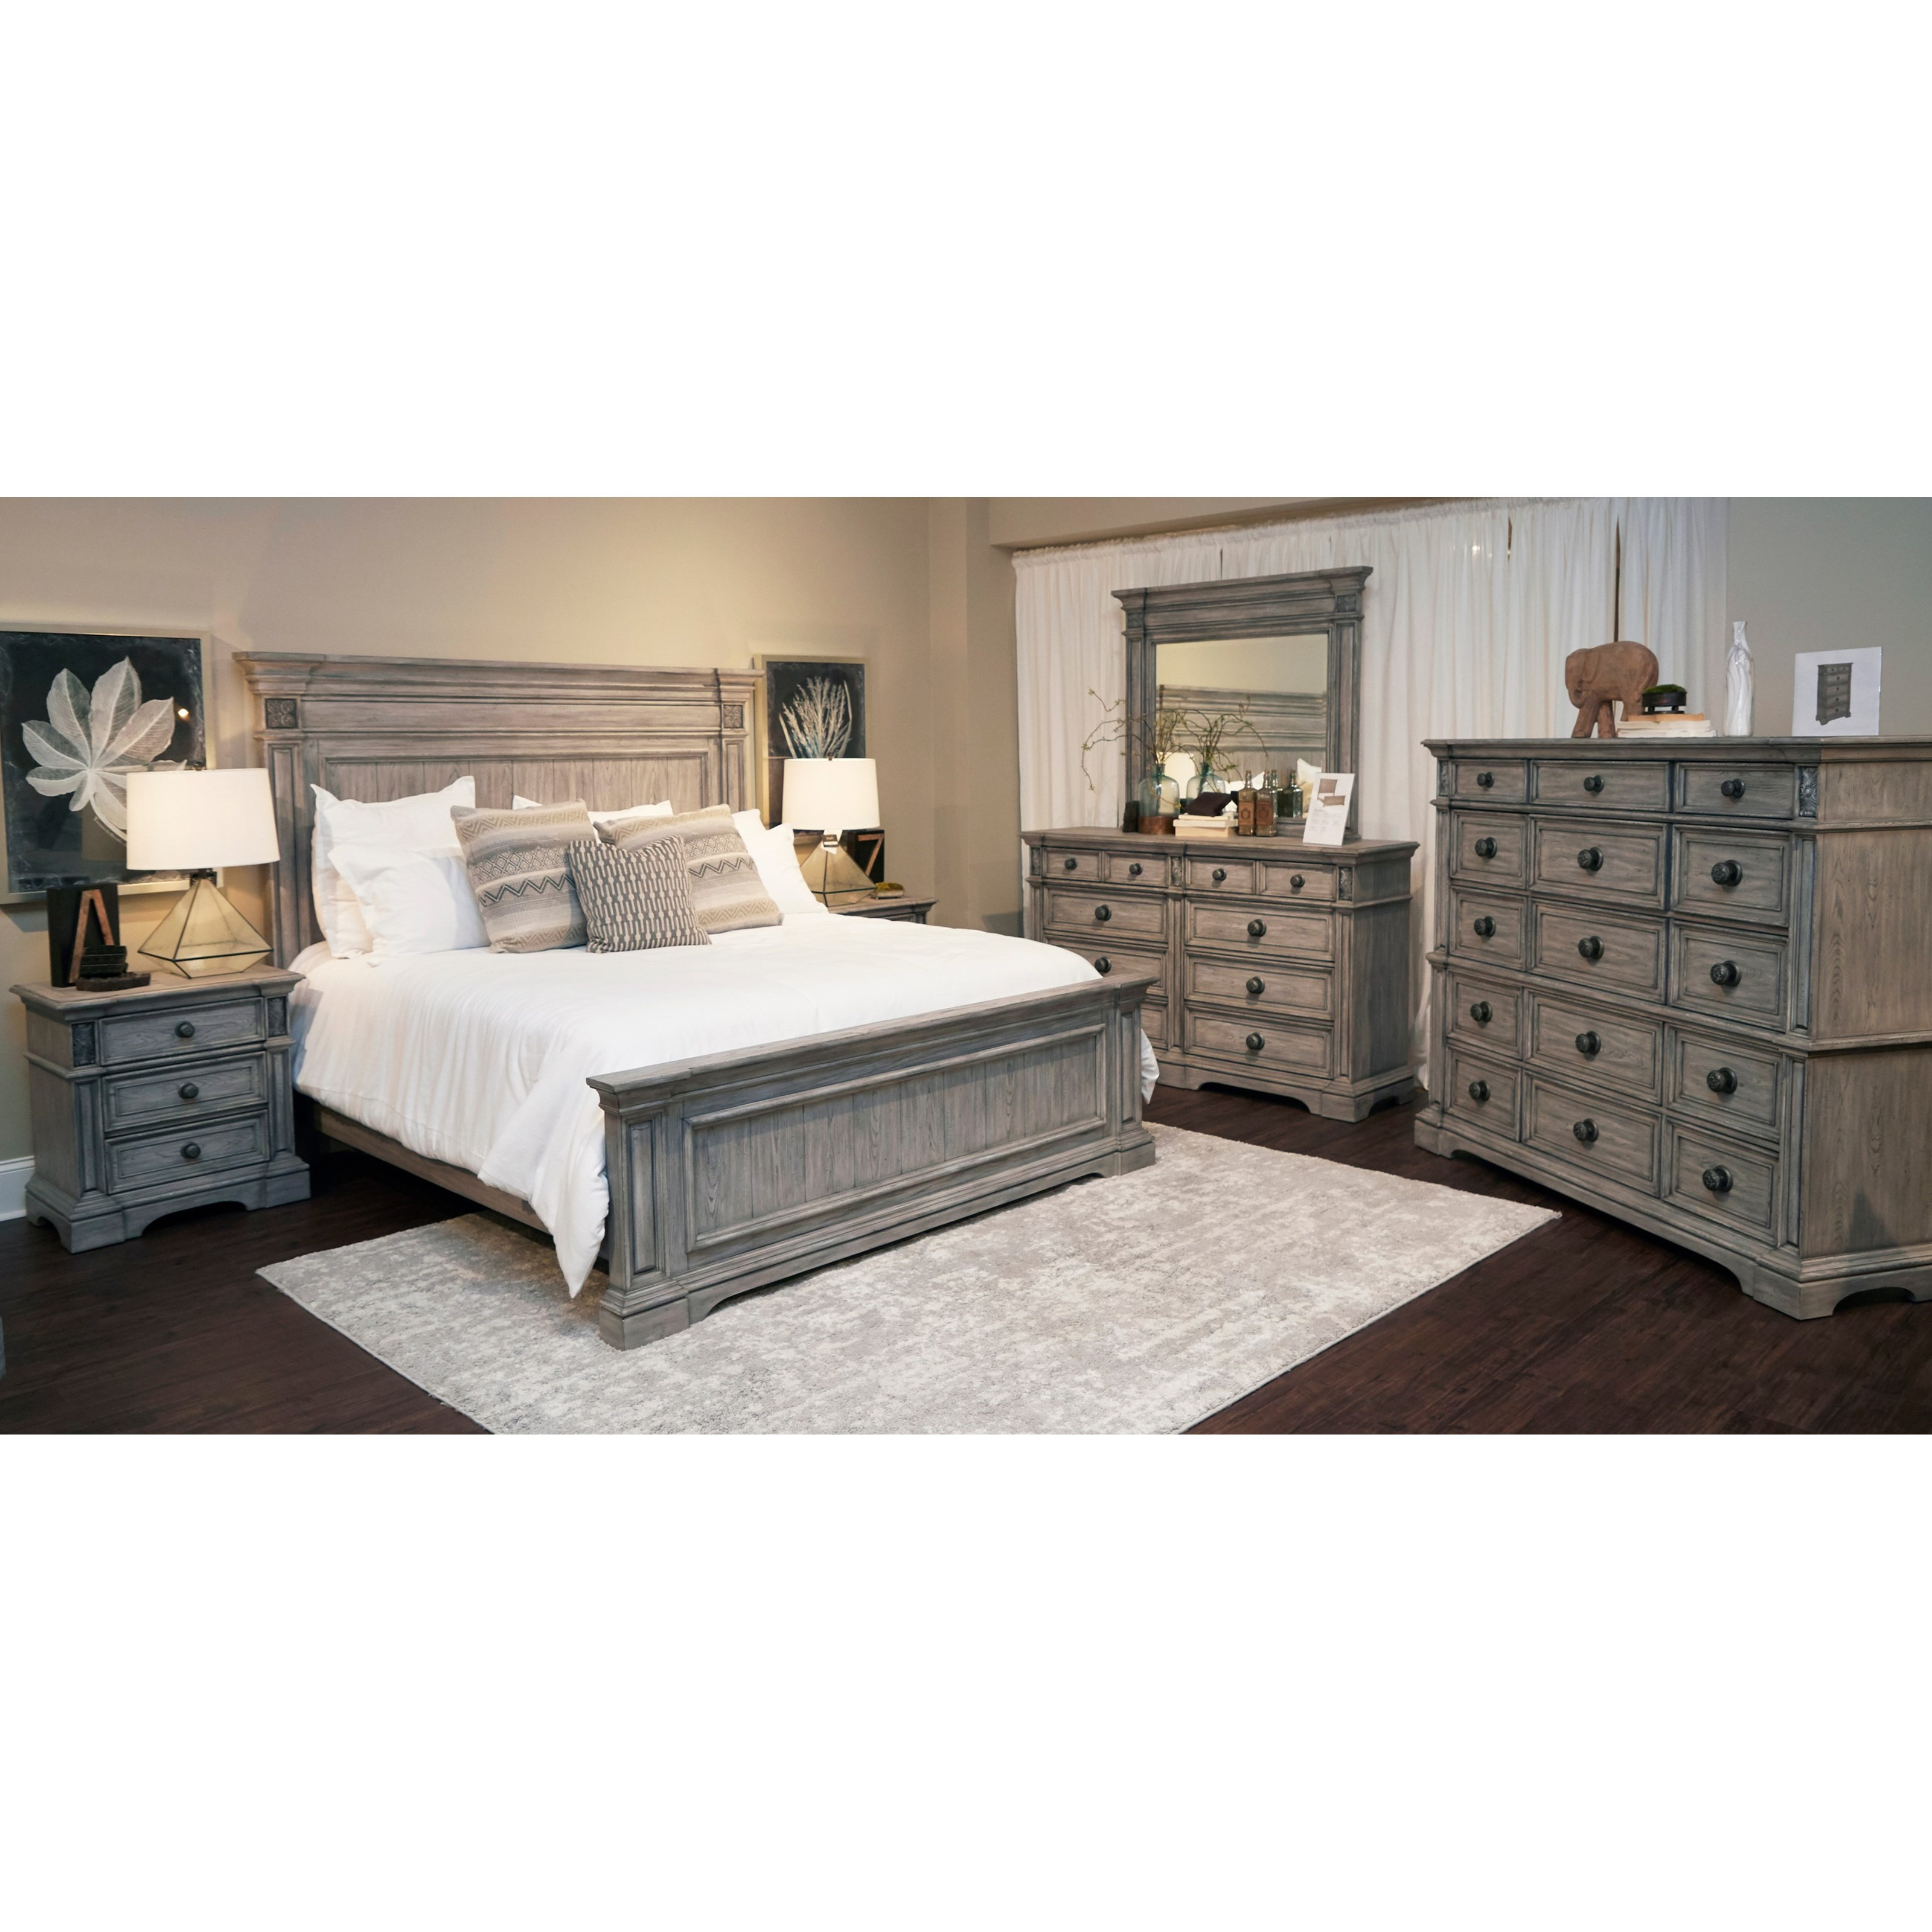 Windmere Queen Bedroom Group by Klaussner International at Northeast Factory Direct